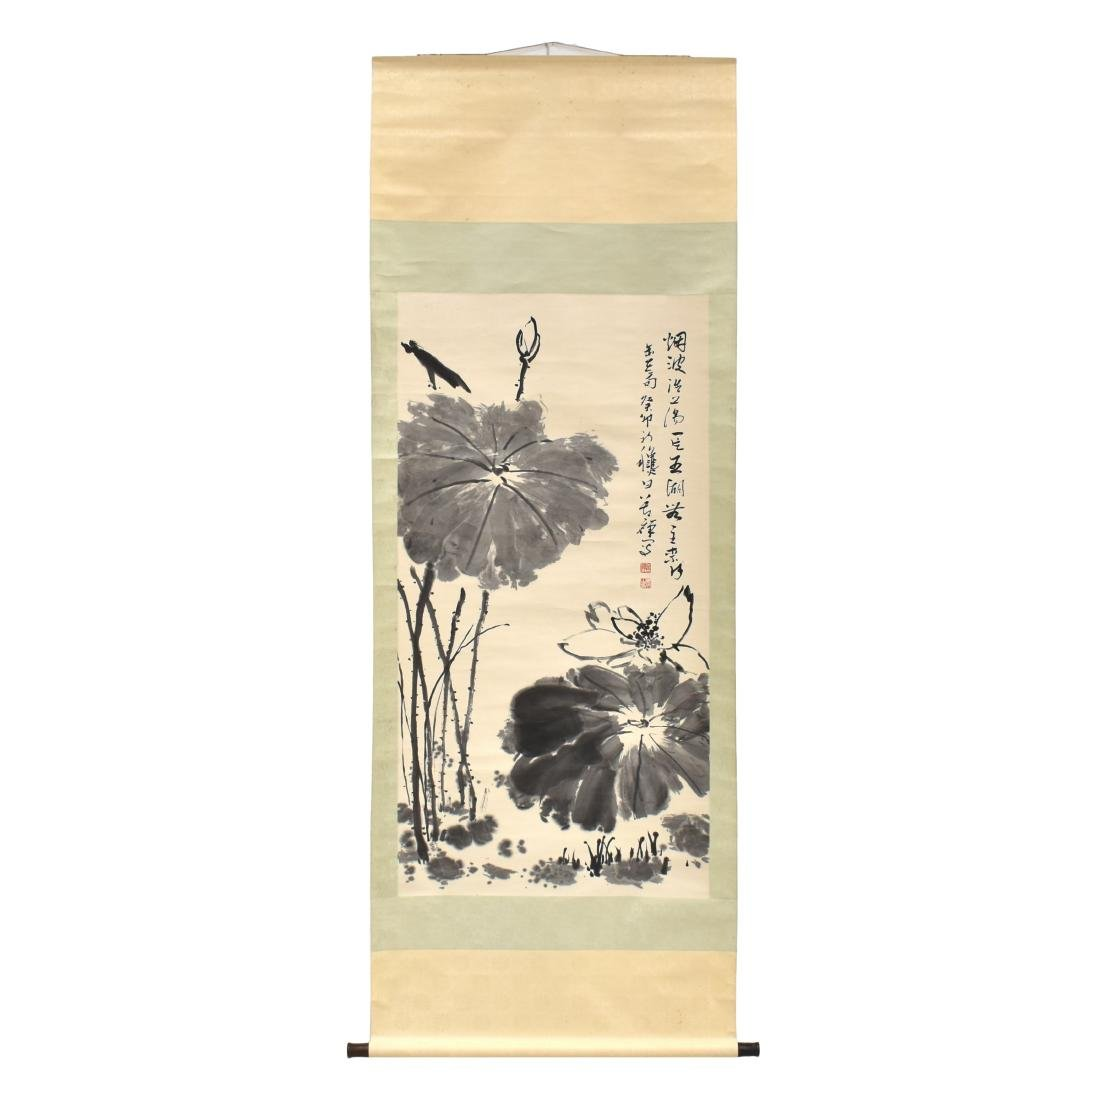 LARGE CHINESE LOTUS BLOOM SCROLL PAINTING - 2